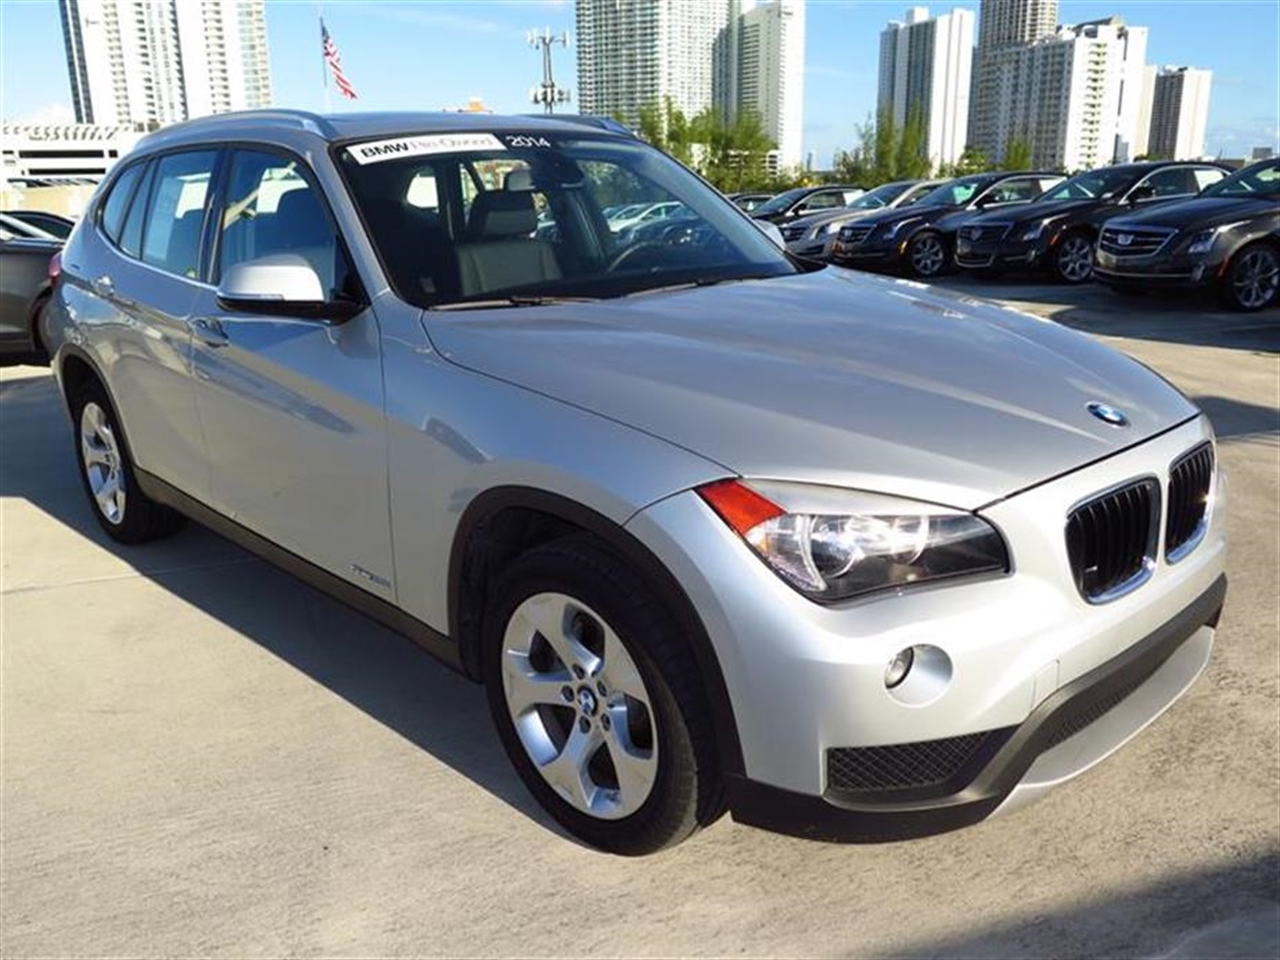 2014 BMW X1 RWD 4dr sDrive28i 10889 miles 2 Seatback Storage Pockets 3 12V DC Power Outlets LEA